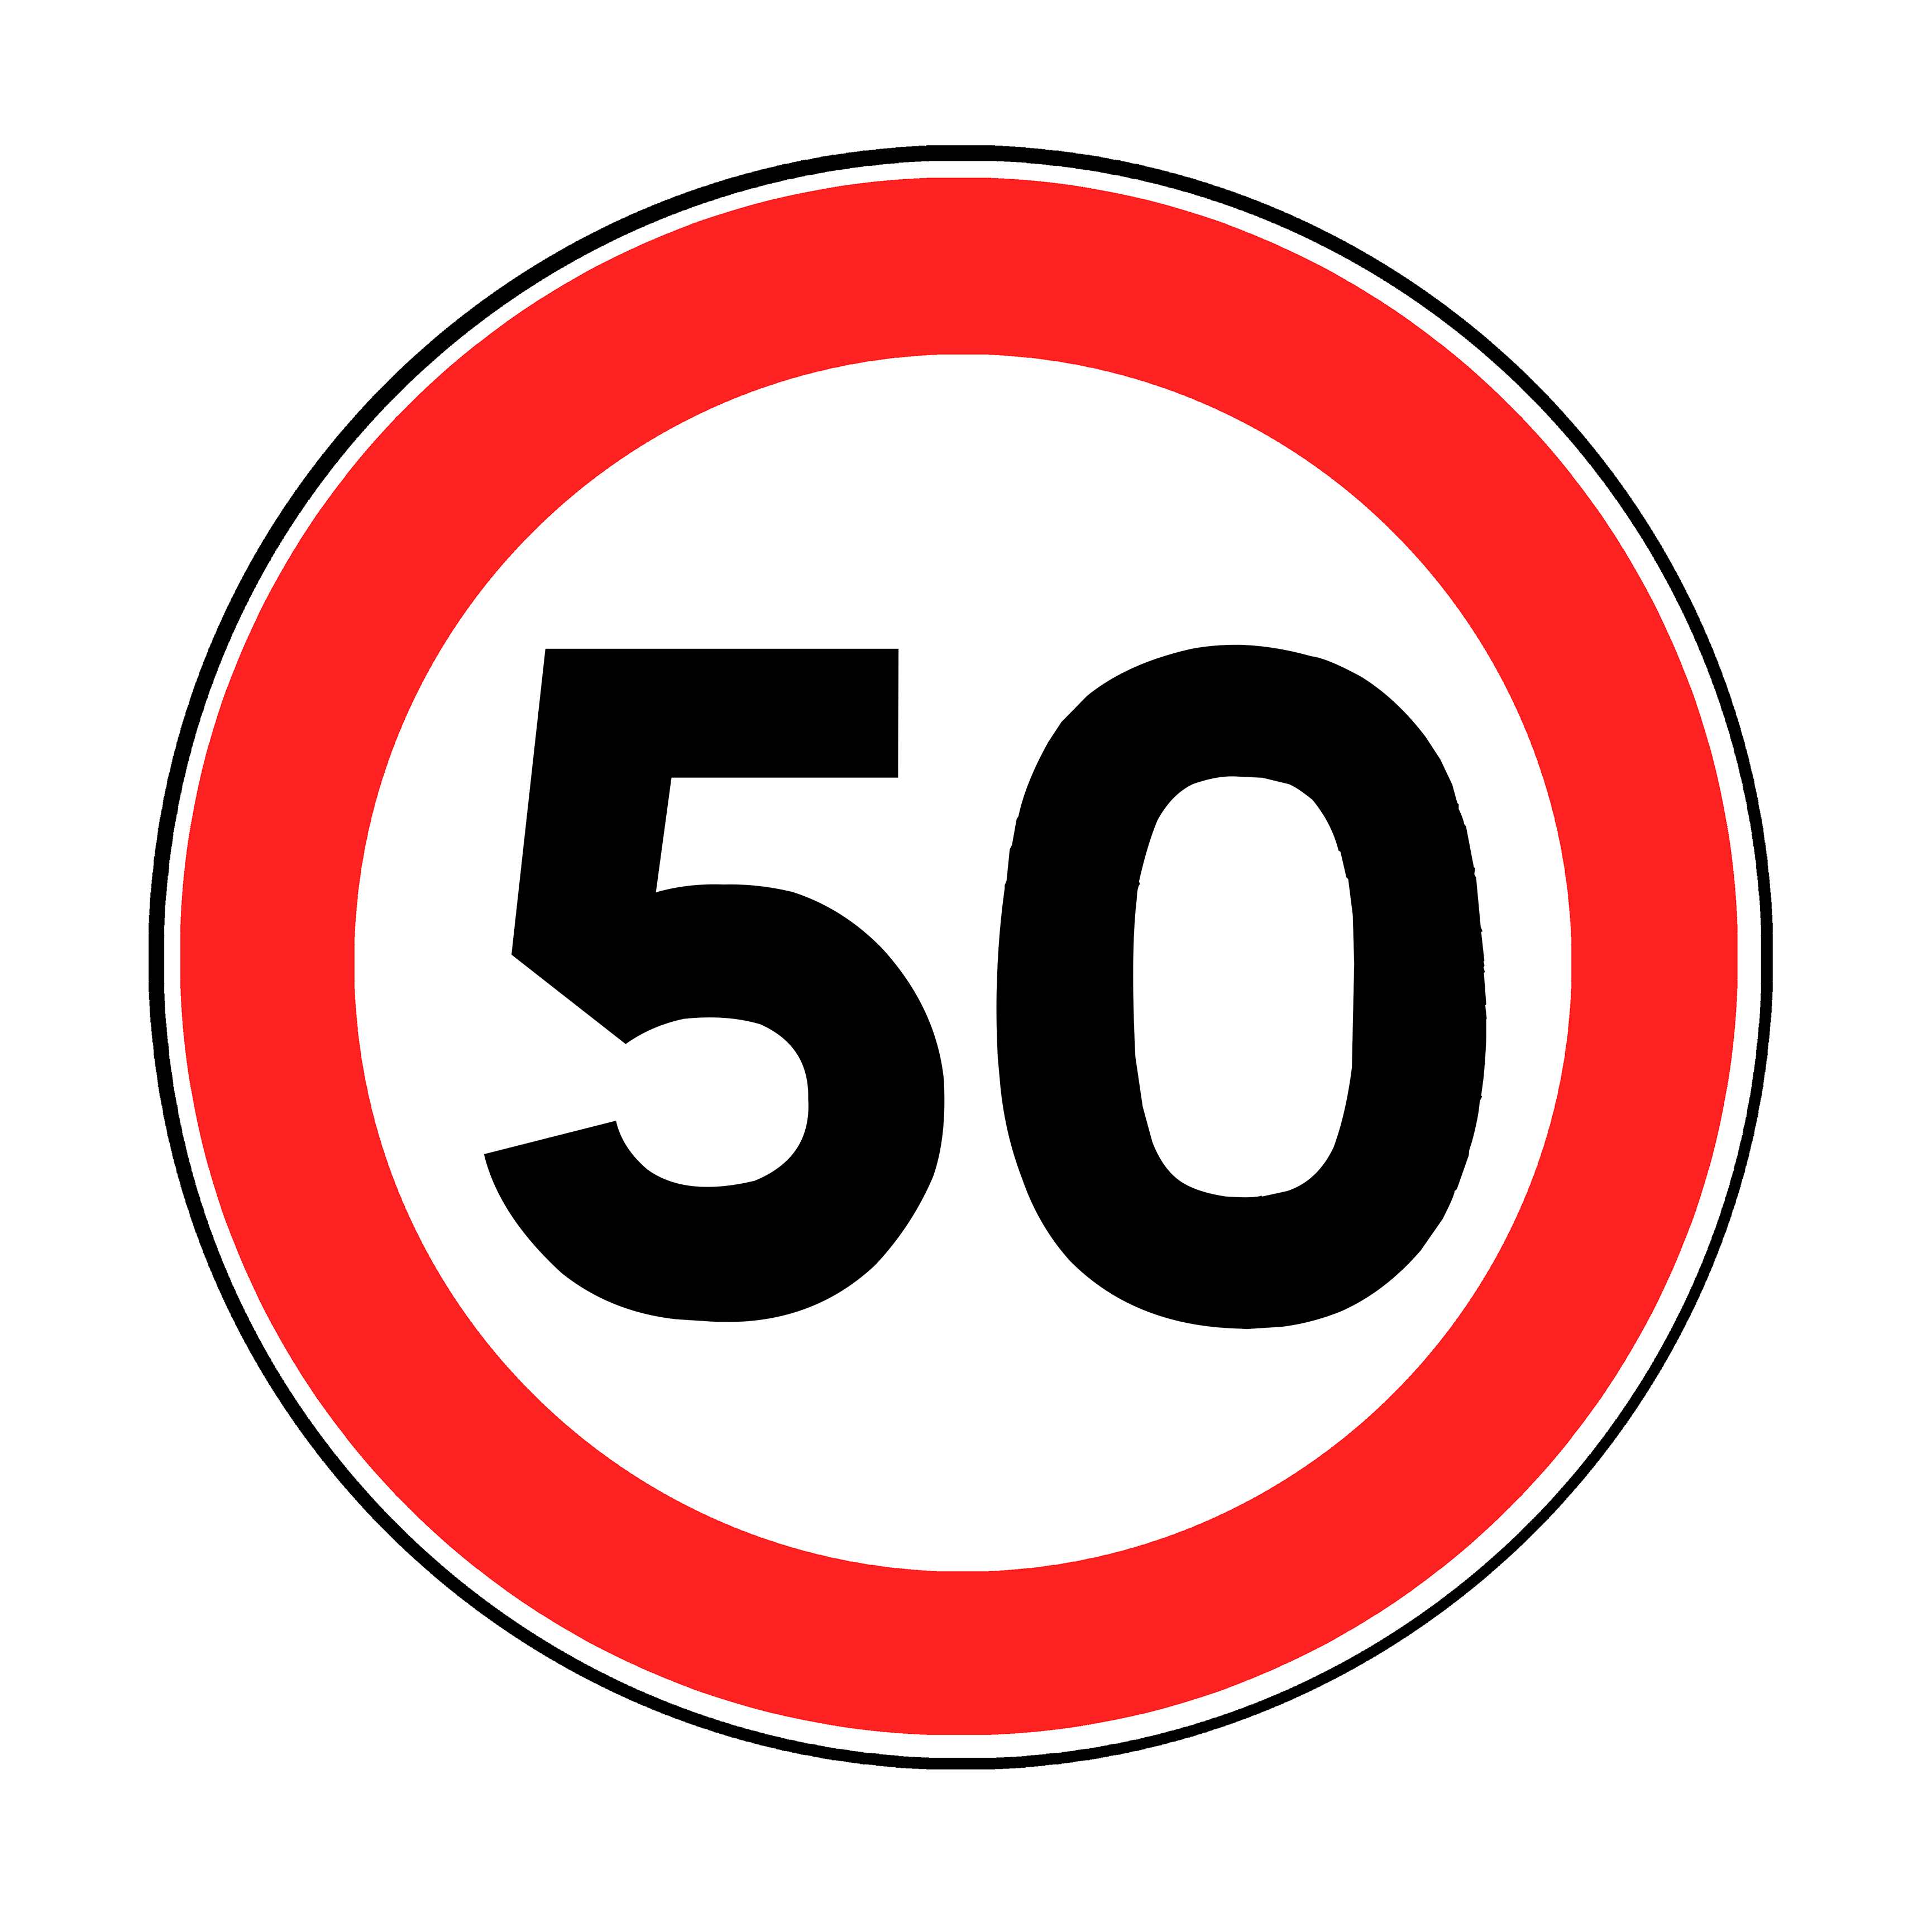 1000 images - Page 4 France_Speed_Limit_50